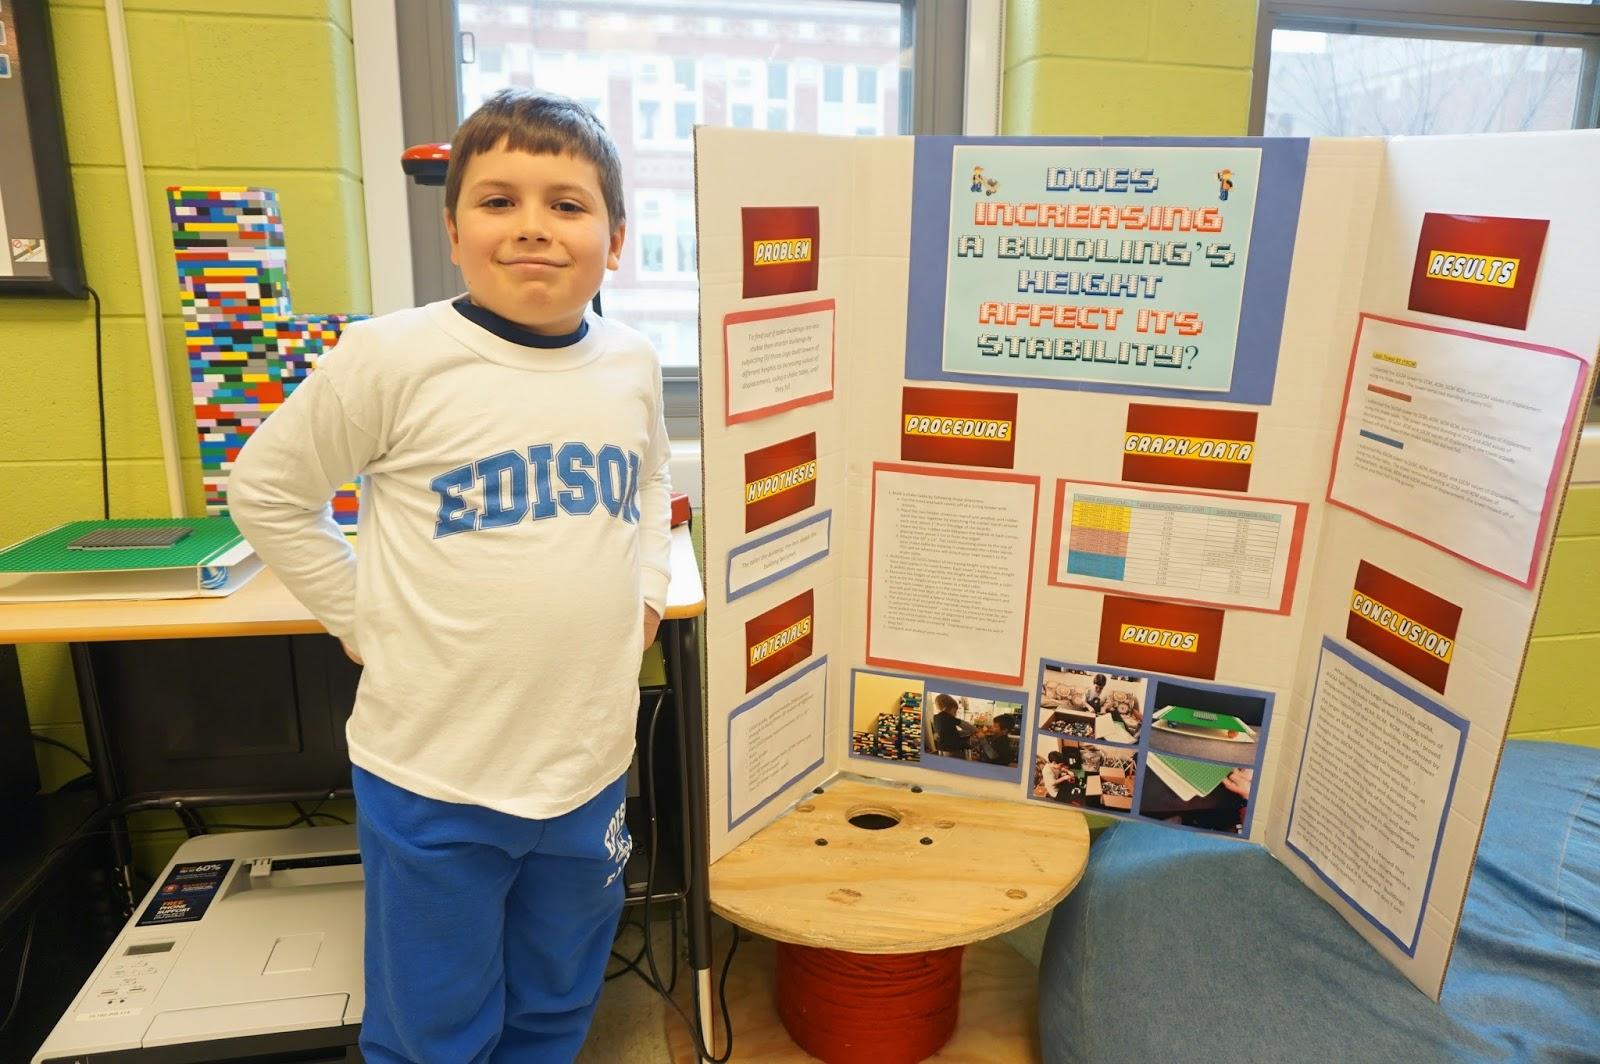 portkey 217 science fair presentations off to a terrific start